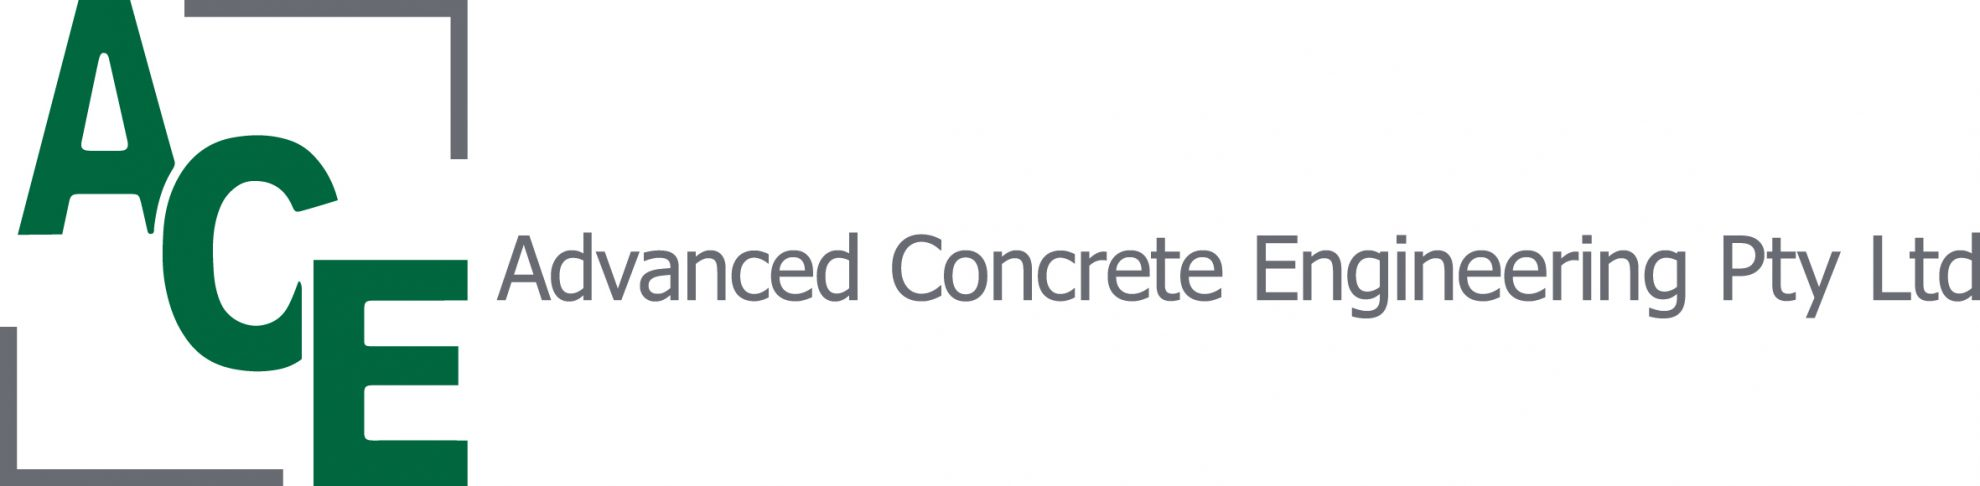 Advanced Concrete Engineering